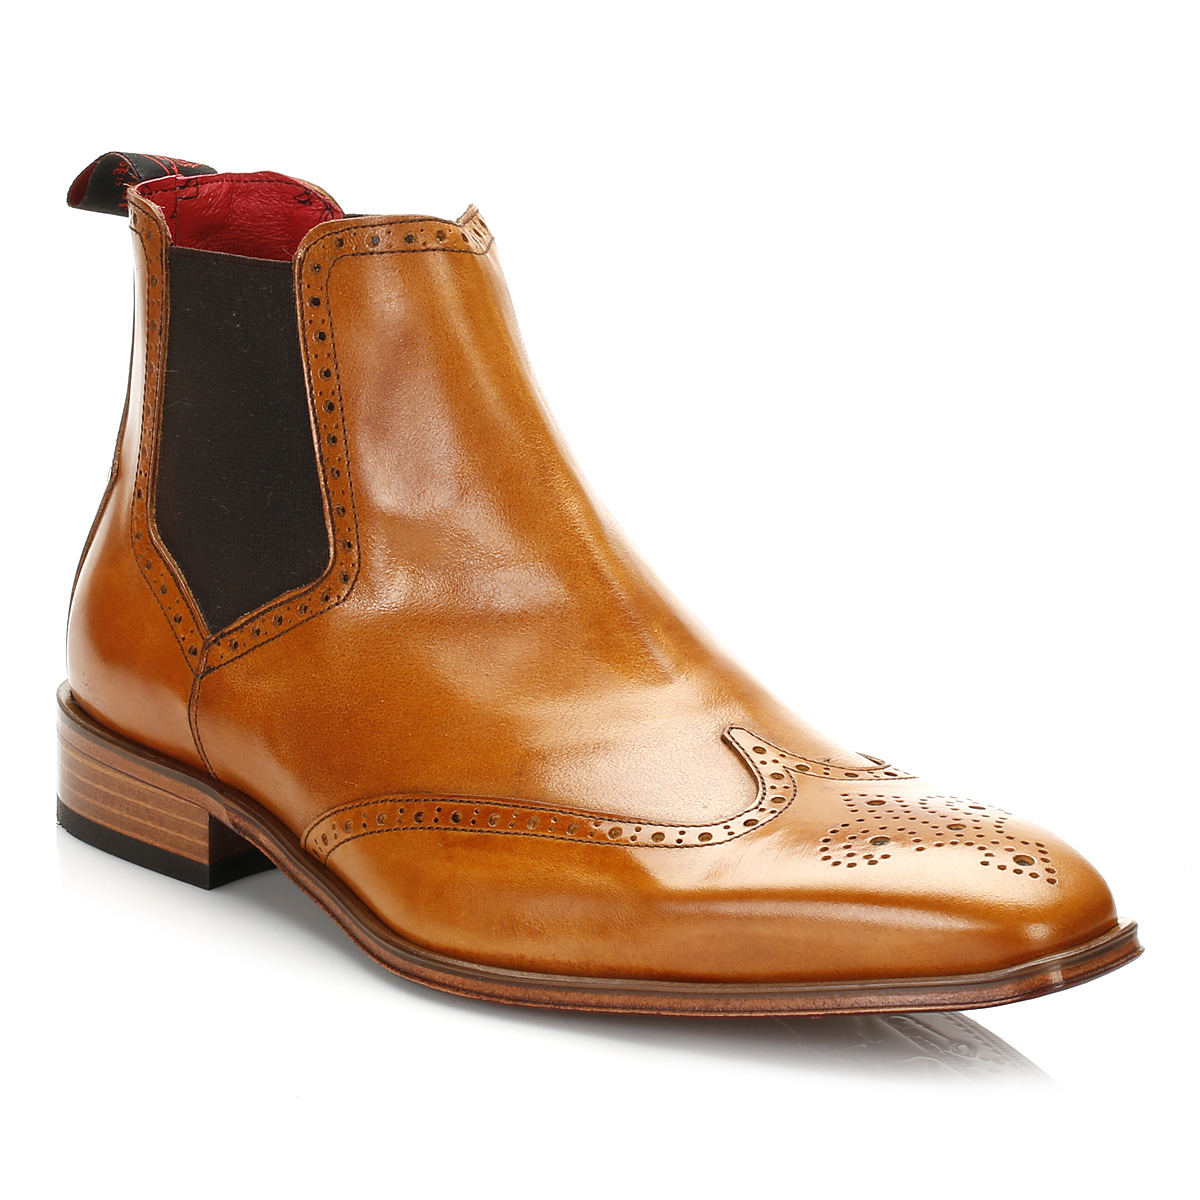 Men's Brown Leather Brogue Boots $ From MR PORTER Price last checked 7 hours ago. Product prices and availability are accurate as of the date/time indicated and are subject to change. Any price and availability information displayed on partners' sites at the time of purchase will apply to Price: $